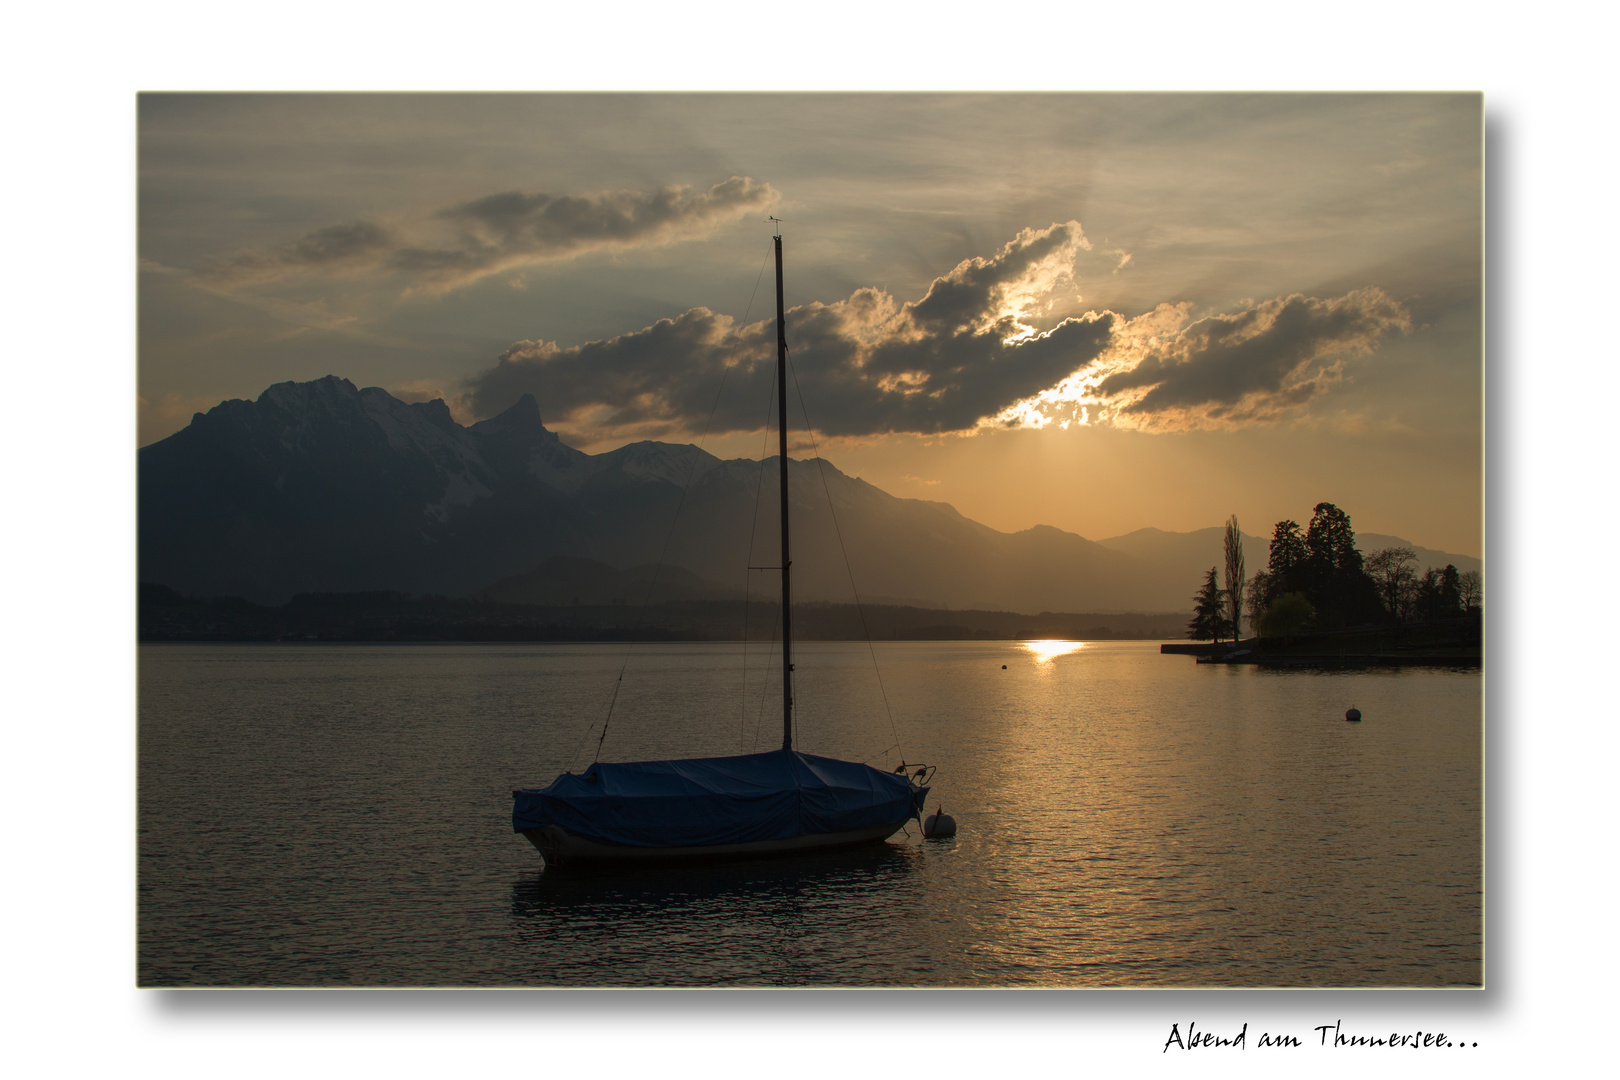 Abend am Thunersee...